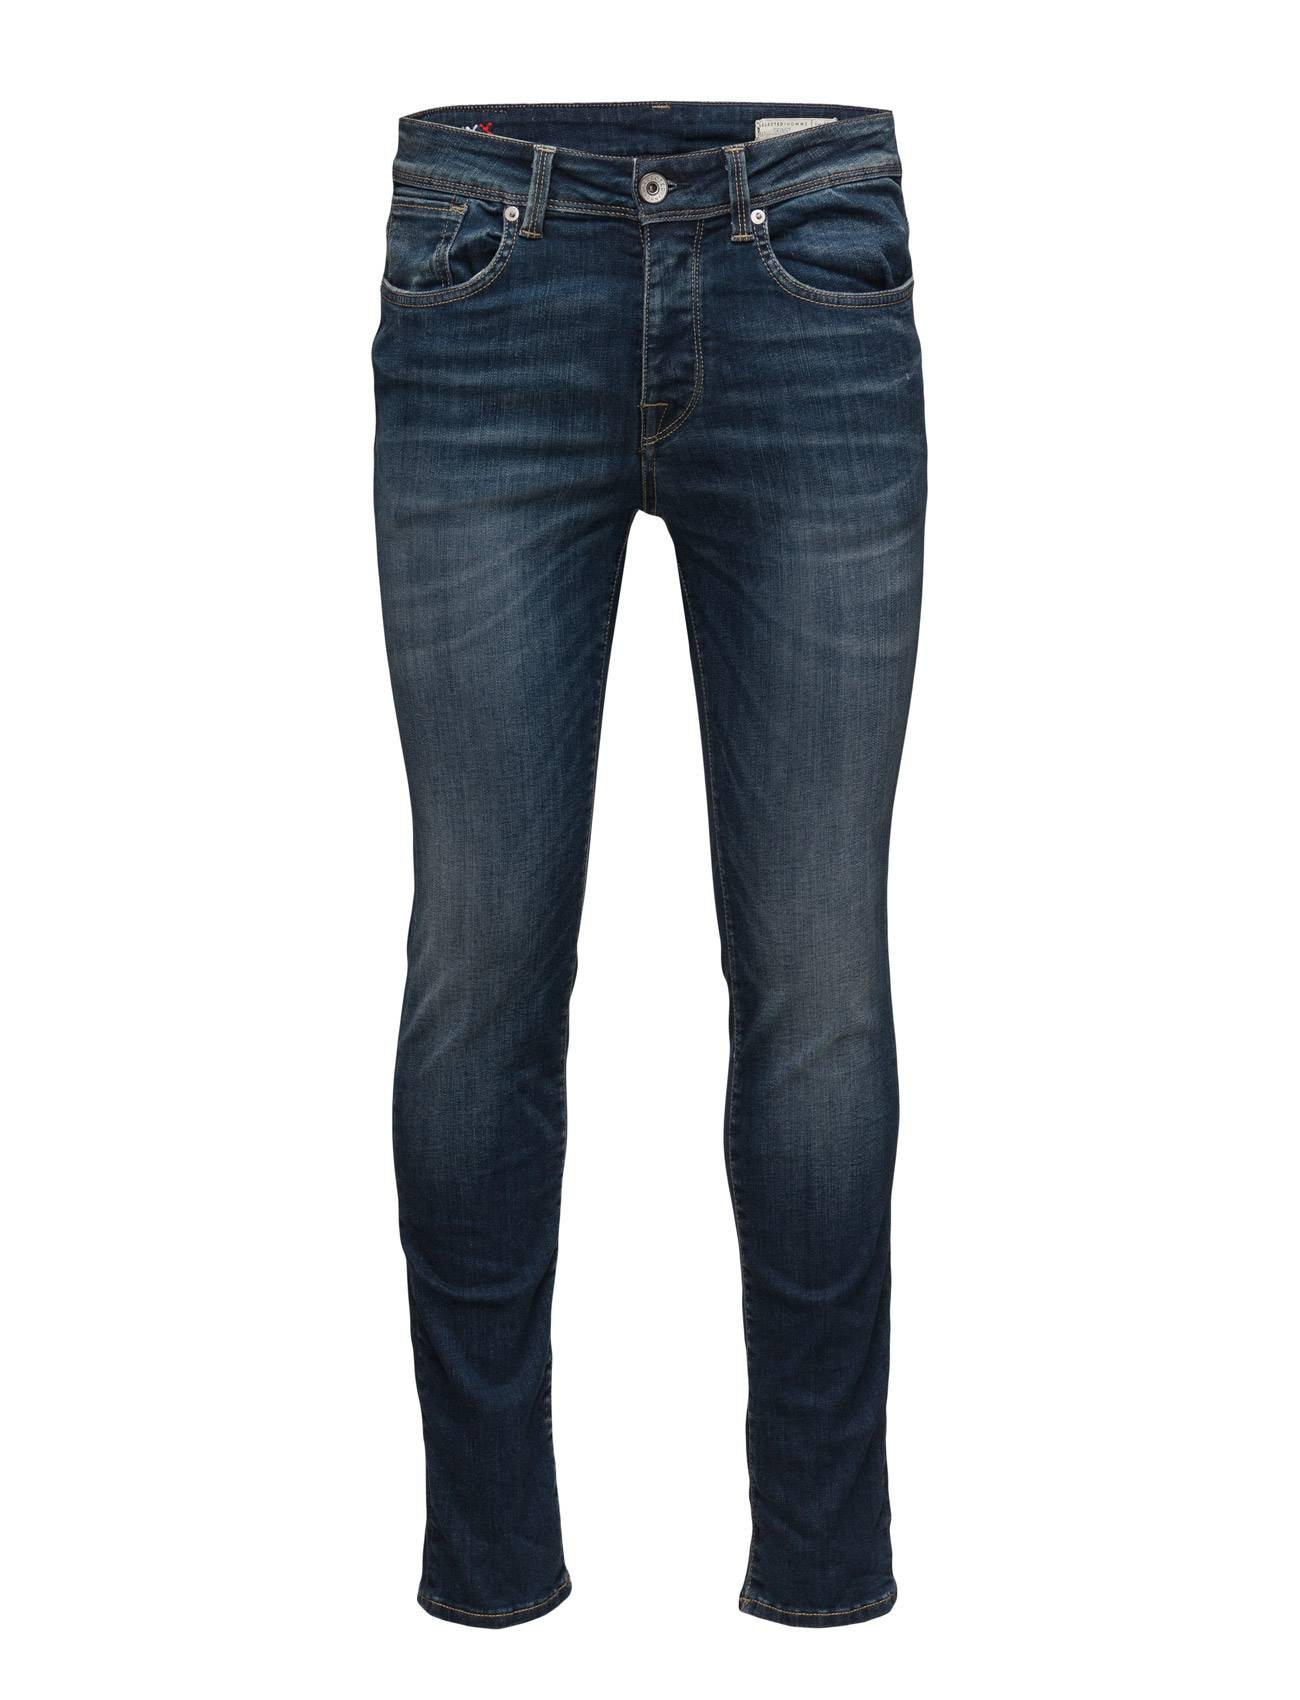 Selected Homme Shnonefabios 1413 Mid.Blue St Jeans Noos